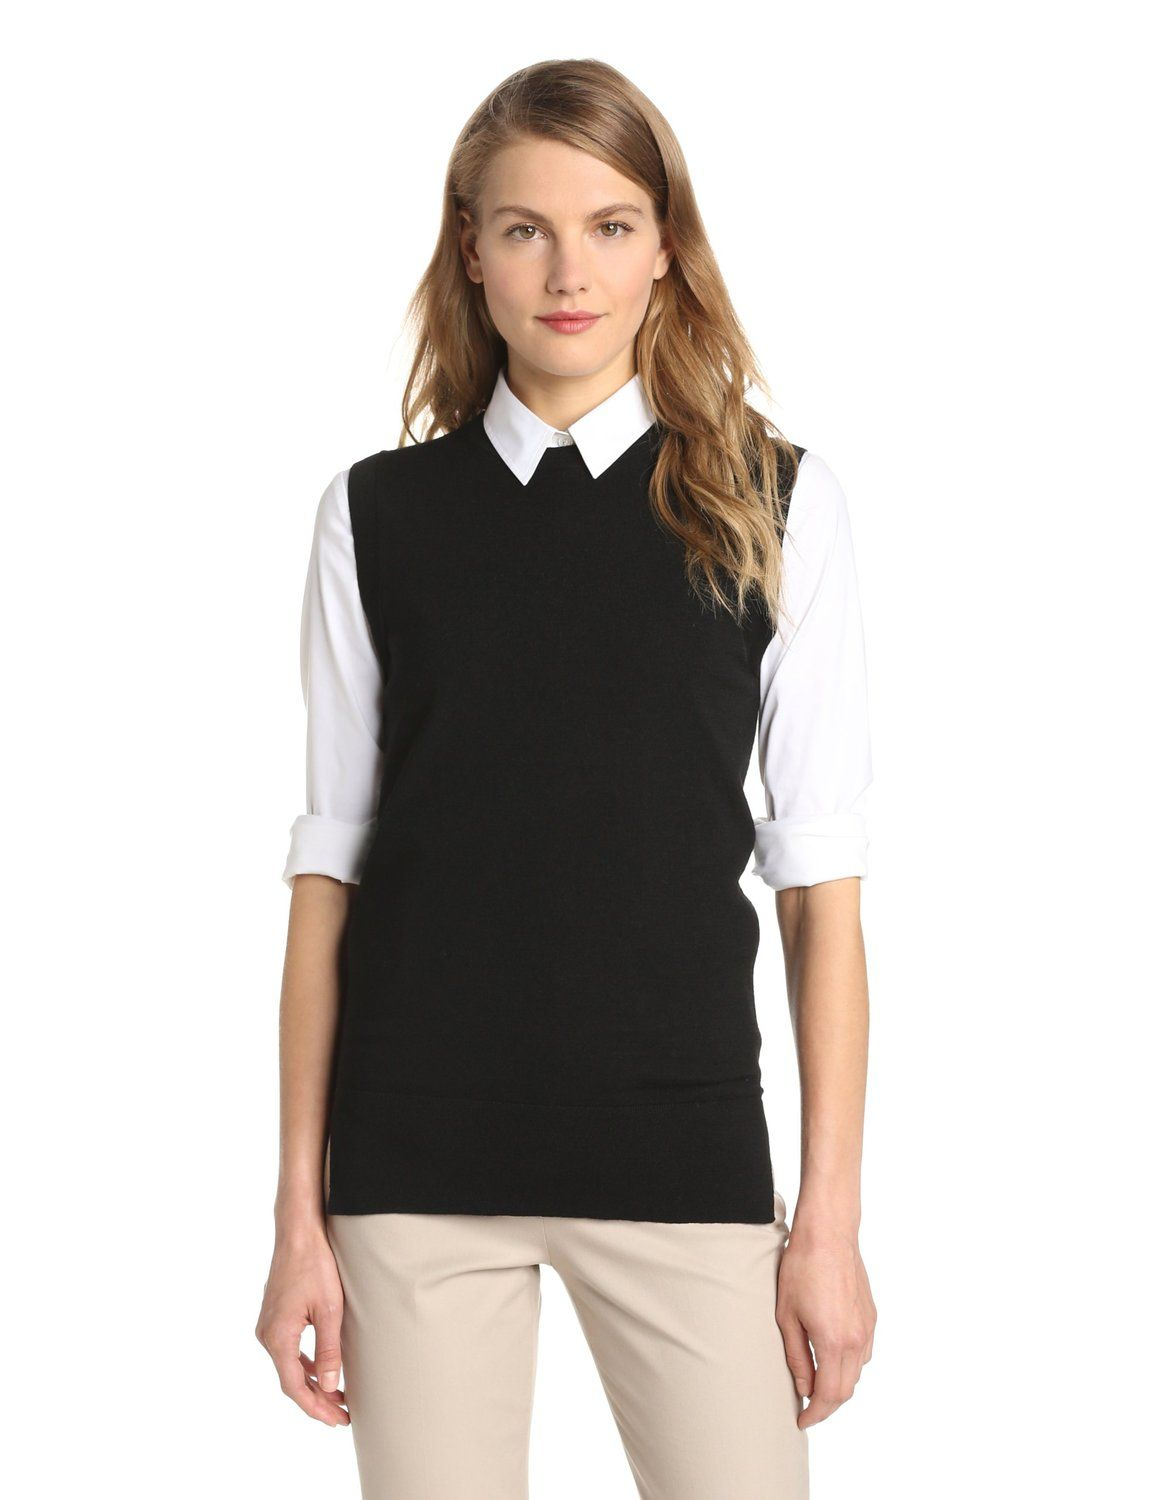 Awesome Womens Sweater Vest : Womens Sweater Vest5 | Cardigans For ...